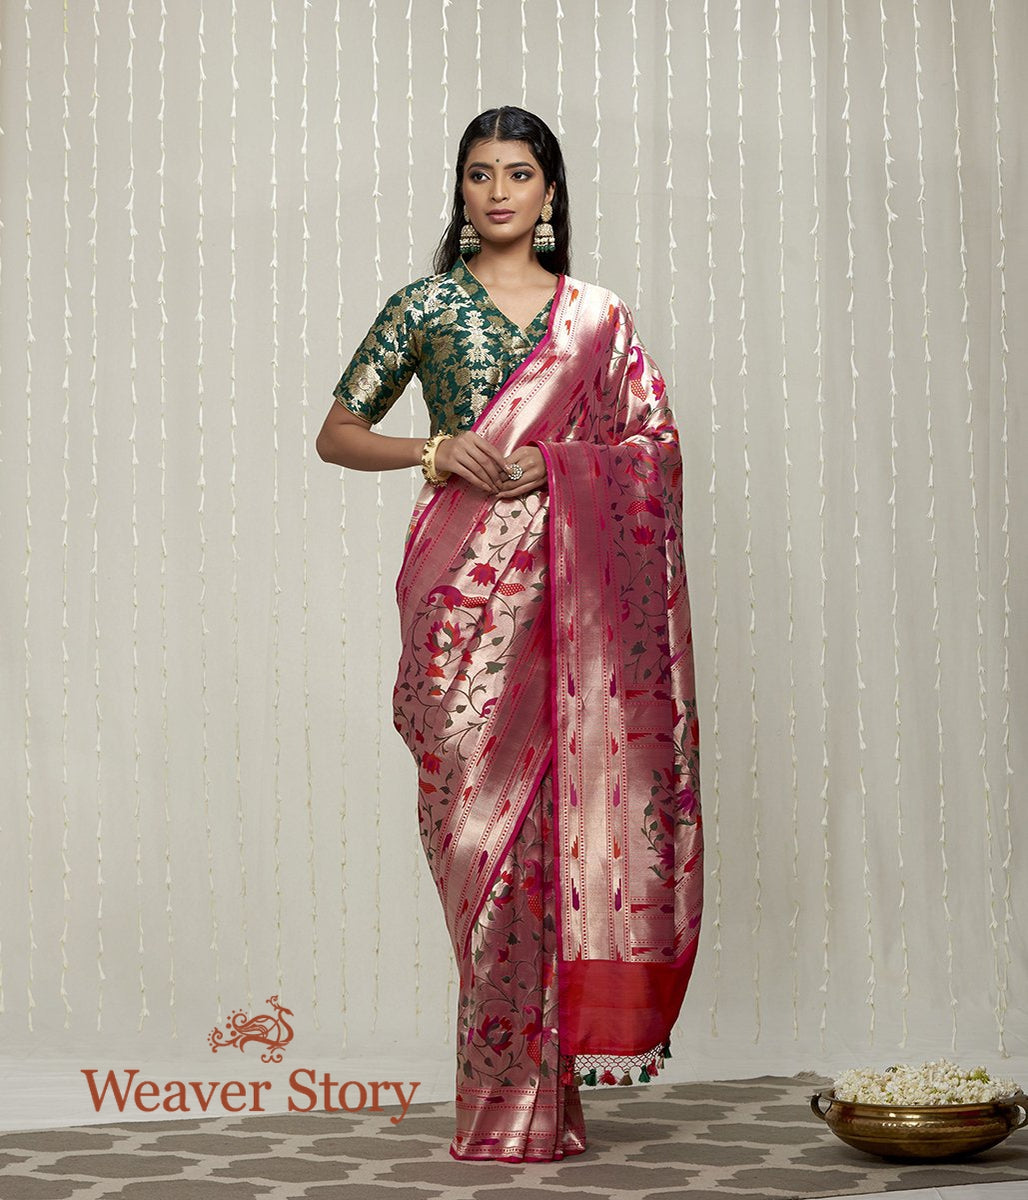 Handwoven Pink Banaarasi Saree with Zari Base and Meenakari